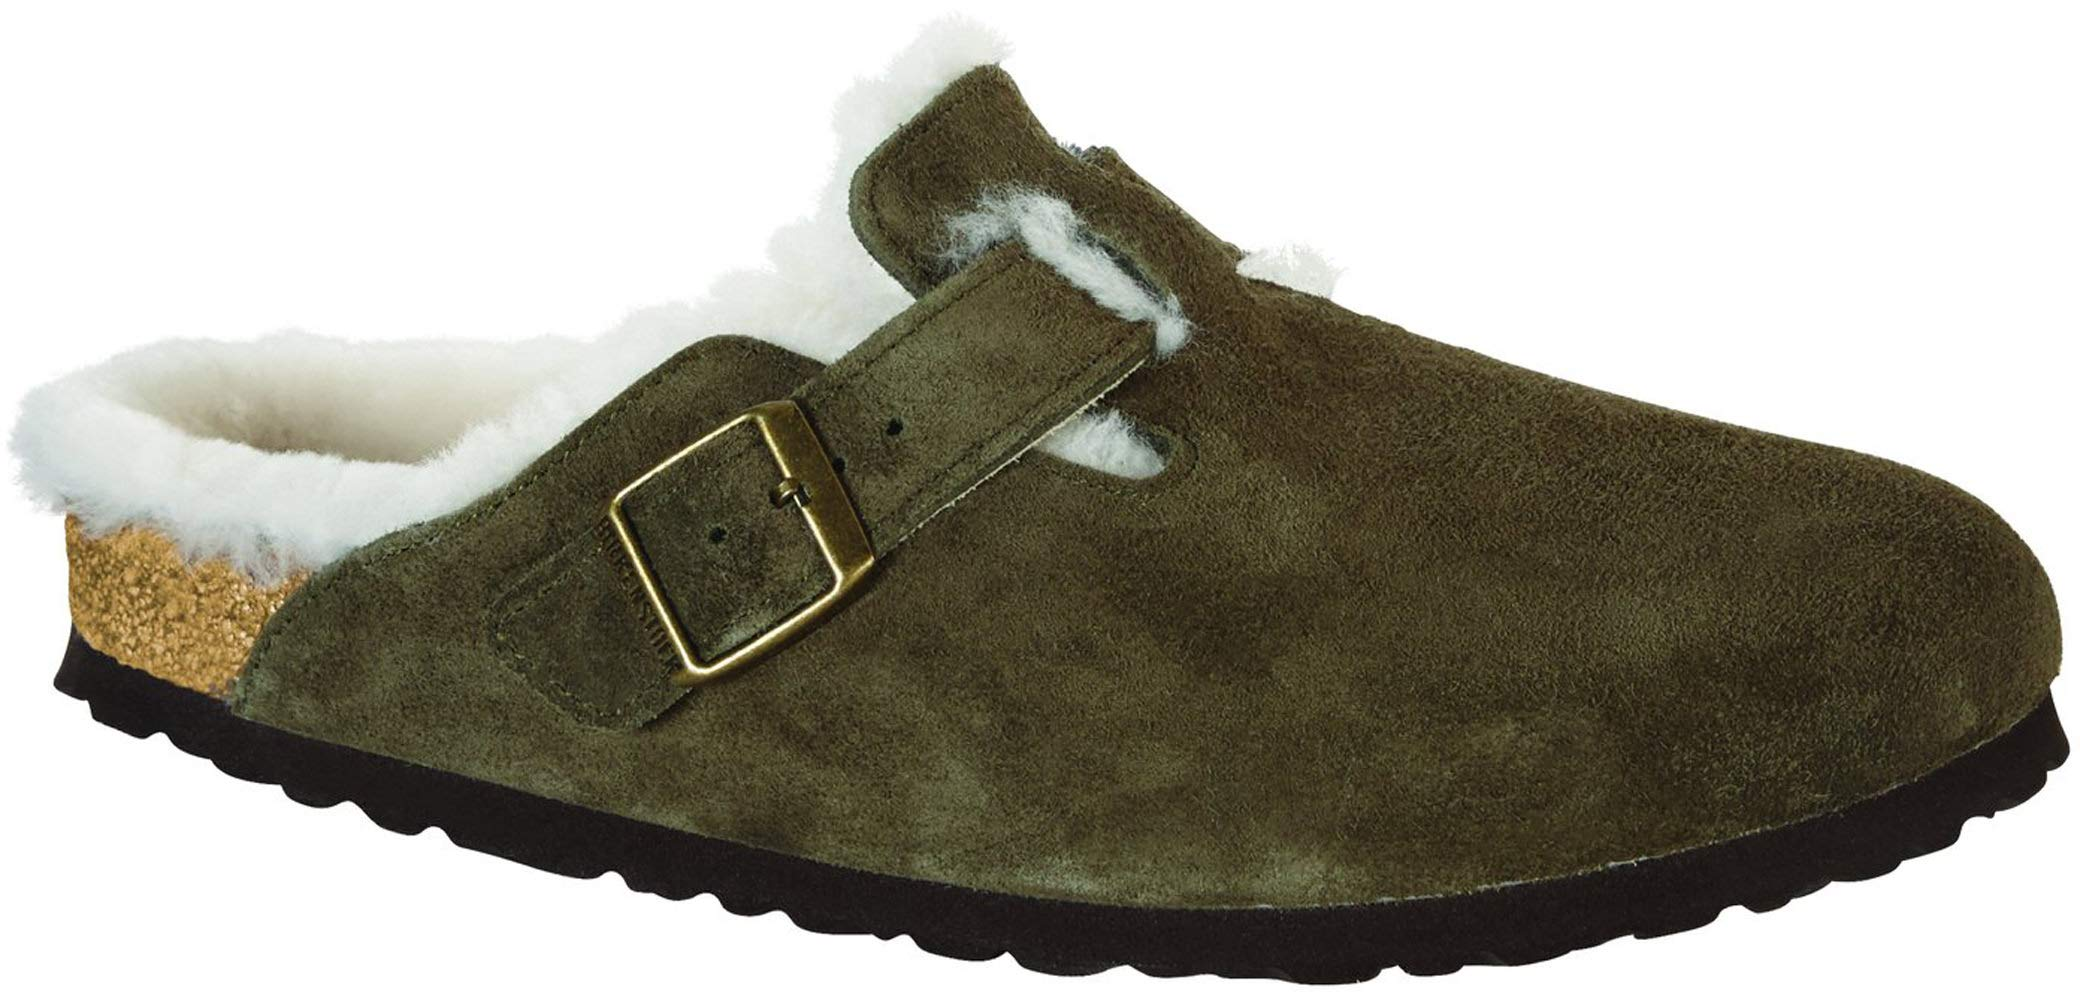 Birkenstock Women's Boston Shearling Clog Forest Natural Shearling Suede Size 41 N EU